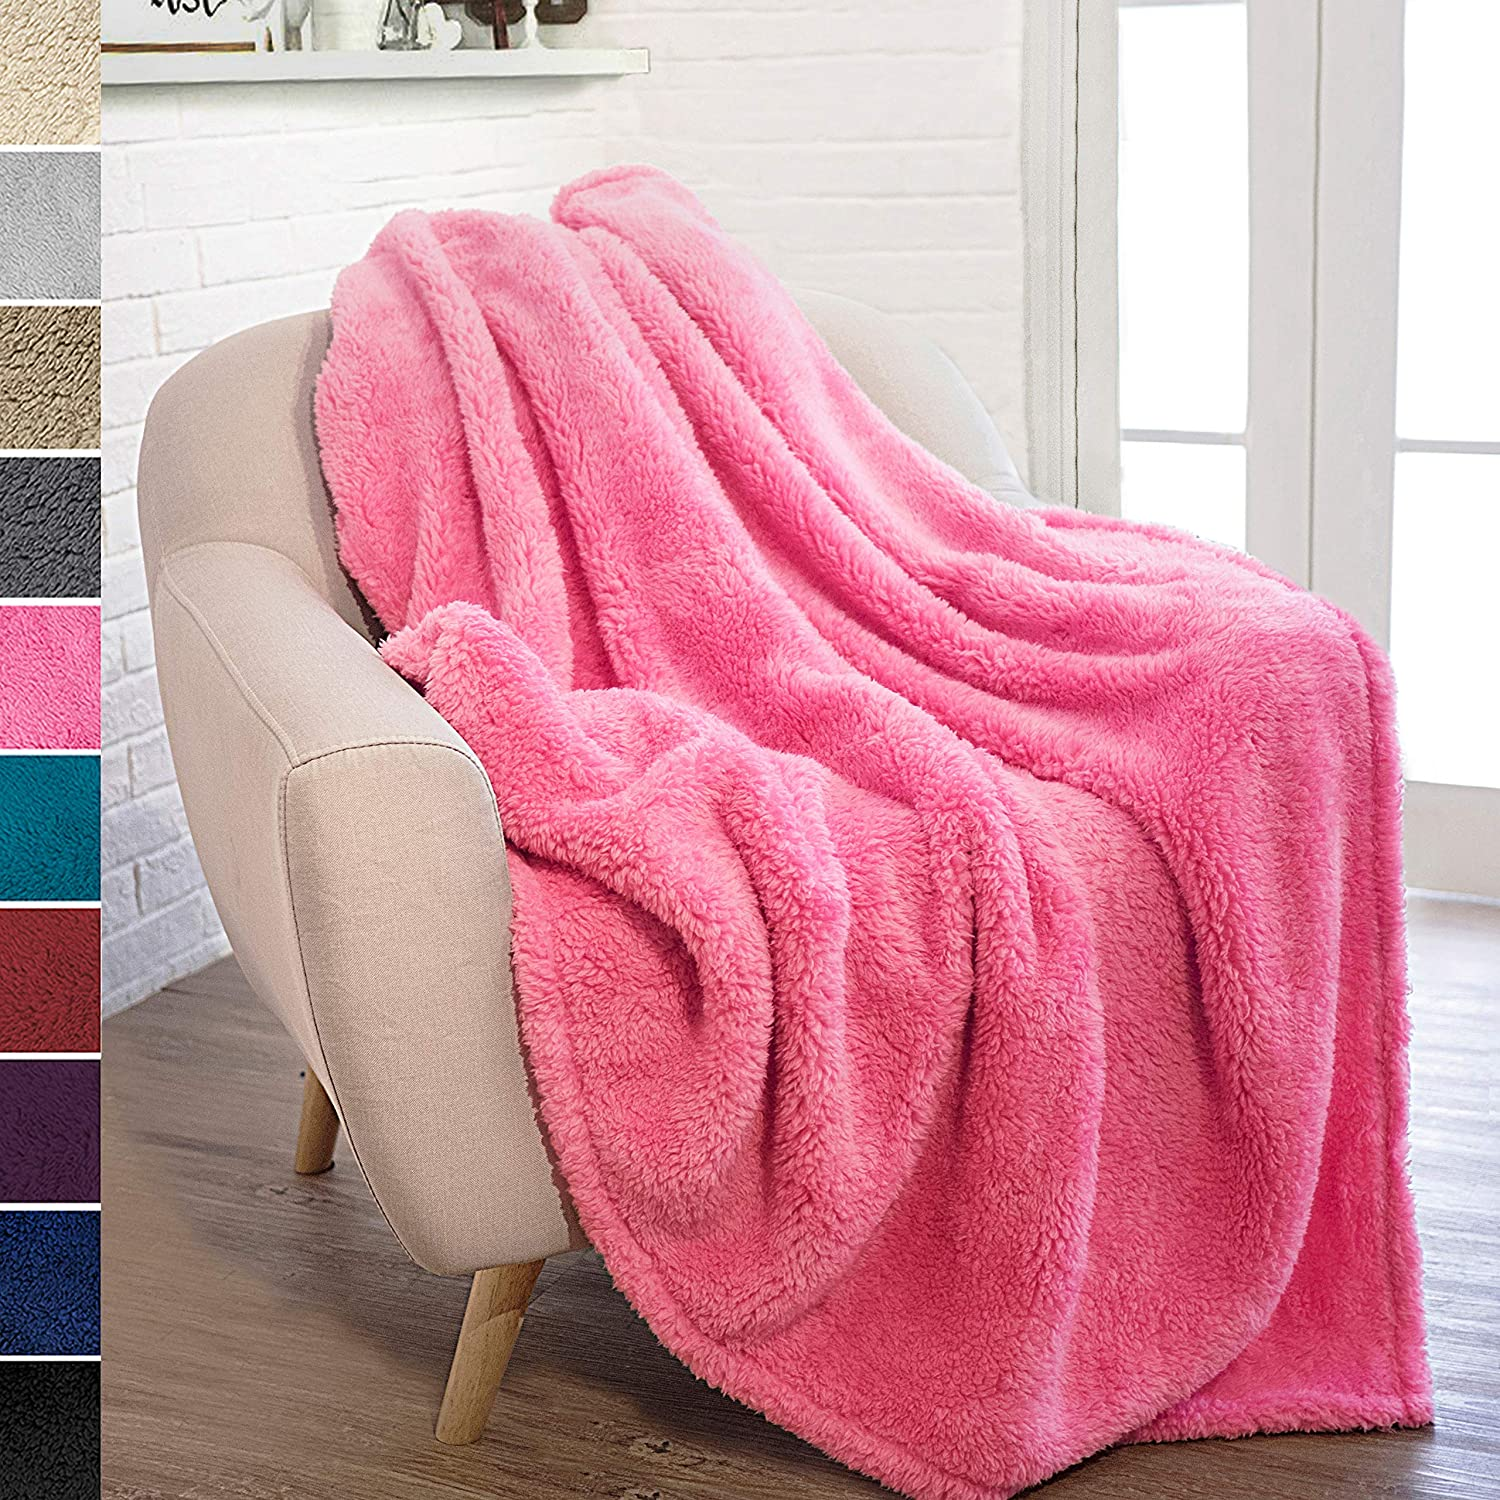 PAVILIA Plush Sherpa Throw Blanket for Couch Sofa | Fluffy Microfiber Fleece Throw | Soft, Fuzzy, Cozy, Lightweight | Solid Pink Blanket | 50 x 60 Inches